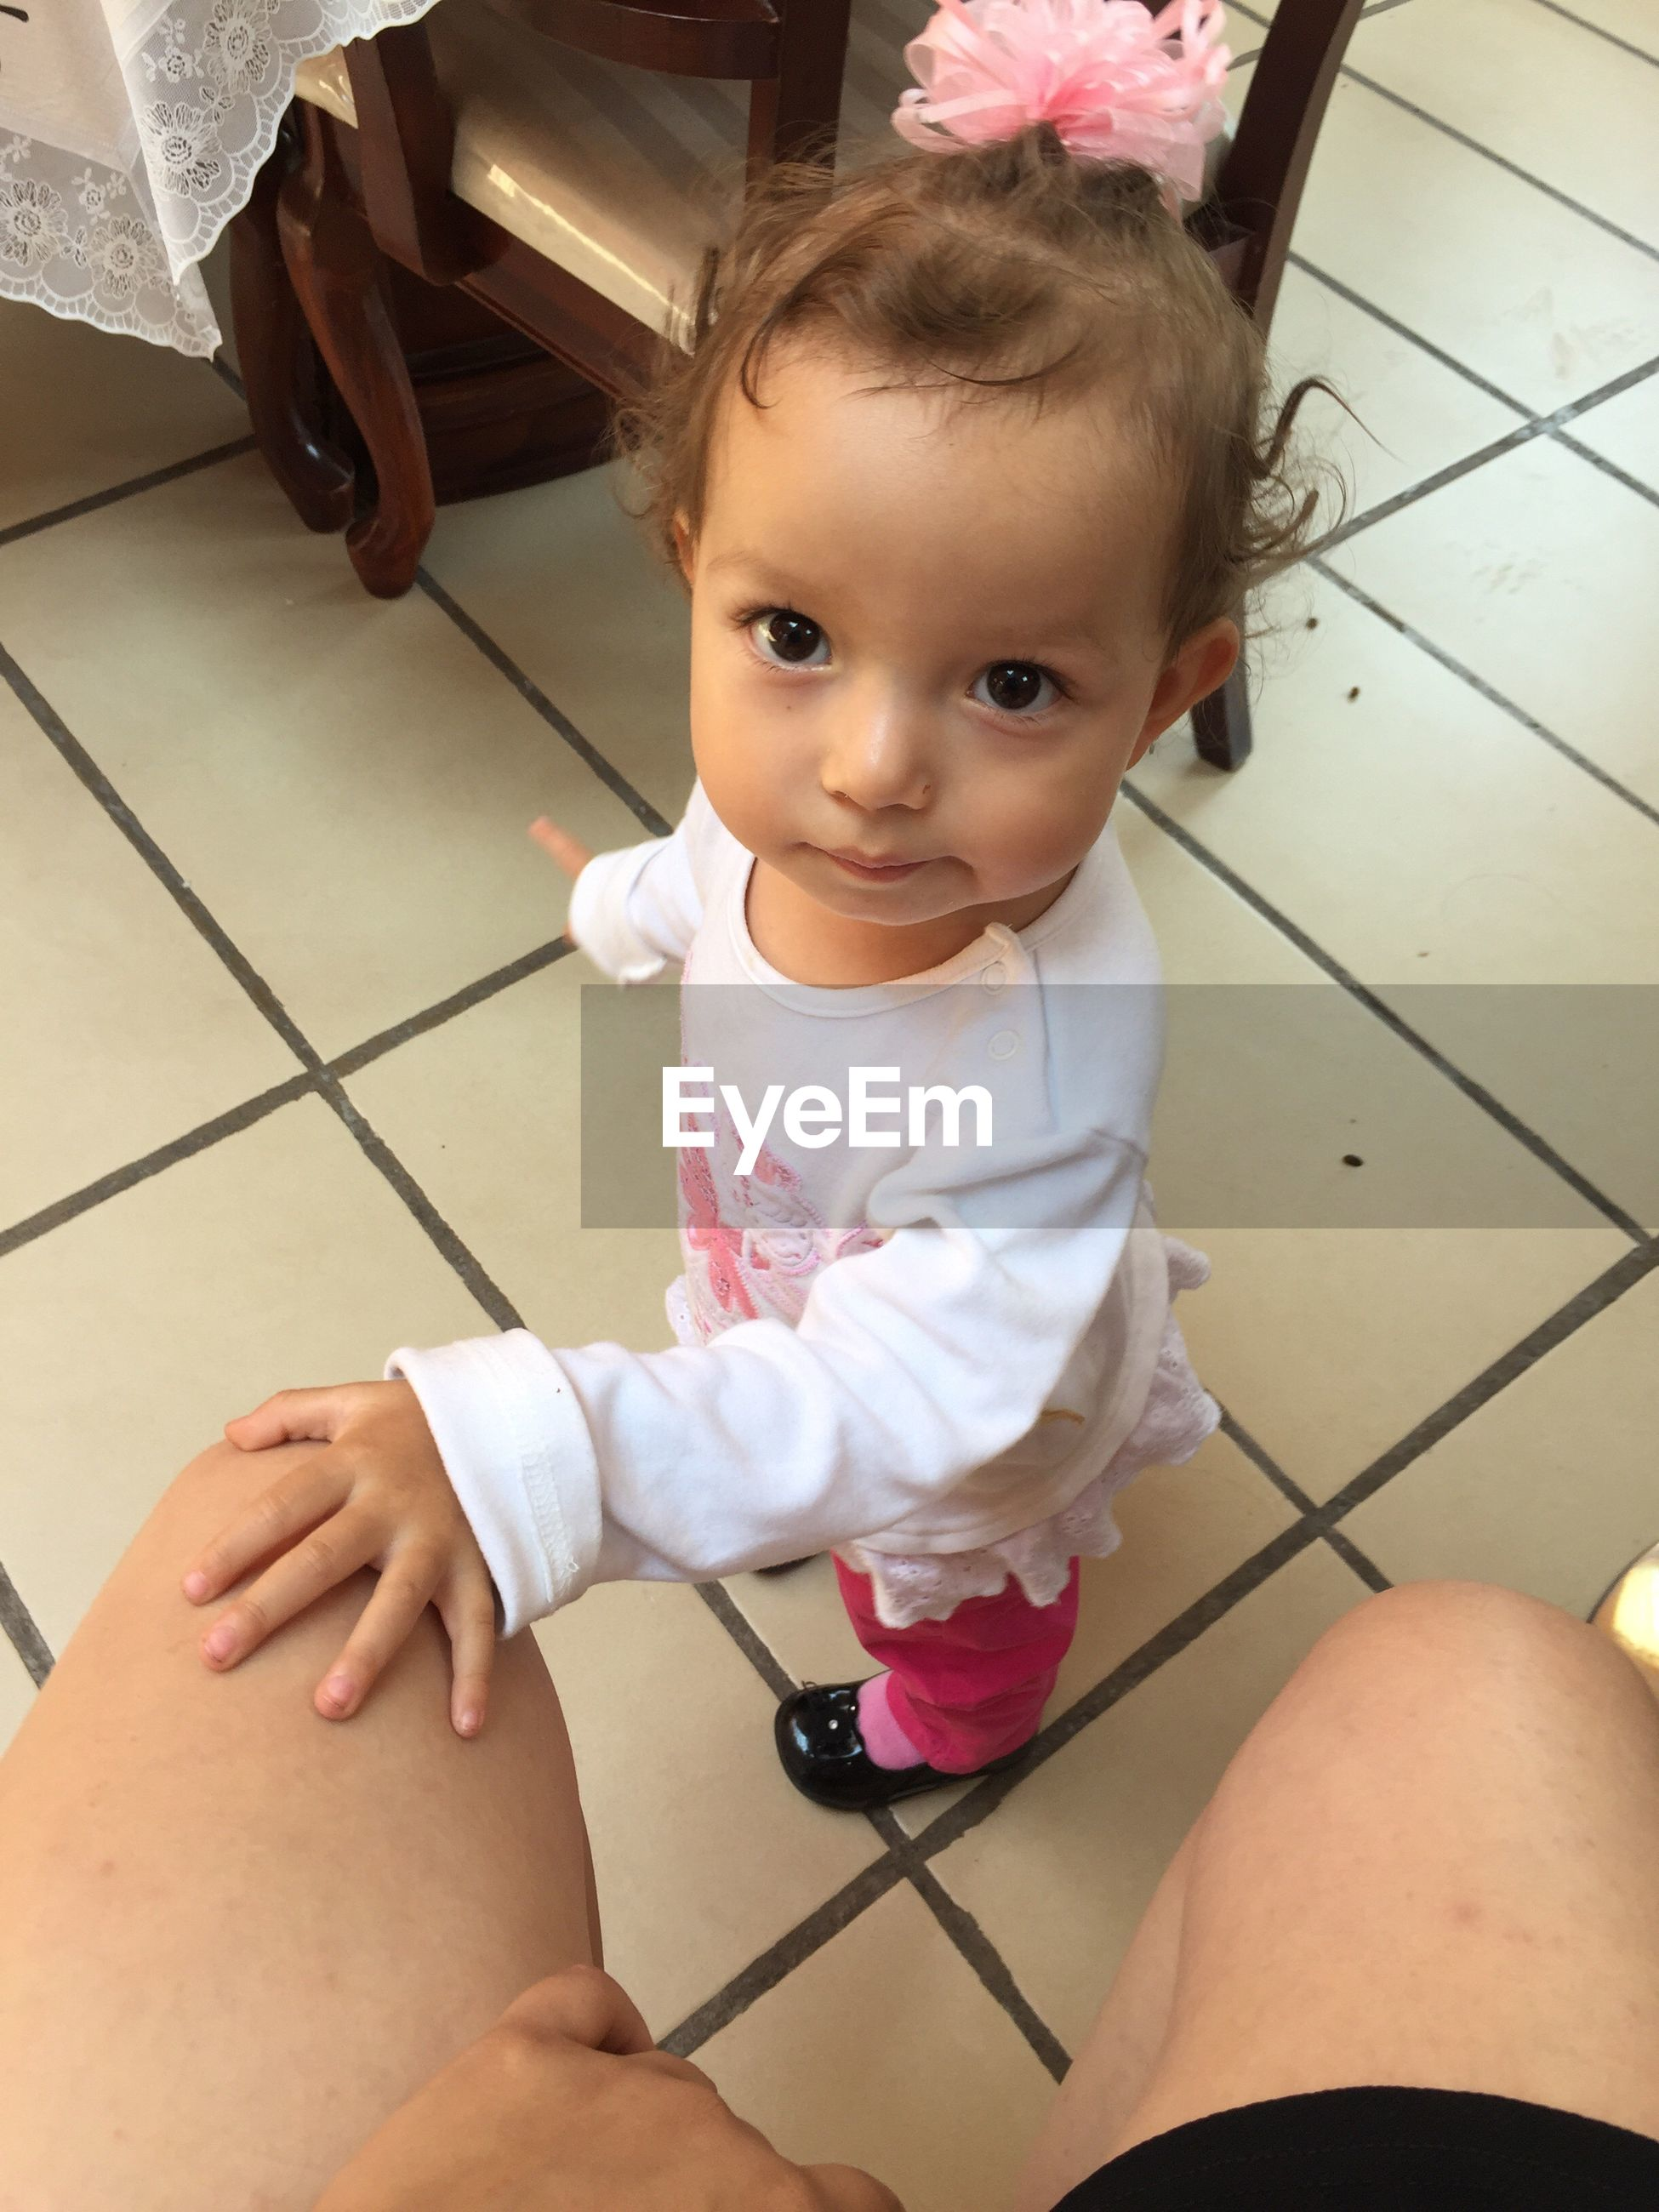 real people, childhood, one person, cute, baby, innocence, looking at camera, indoors, babyhood, high angle view, portrait, toddler, lifestyles, sitting, home interior, full length, day, close-up